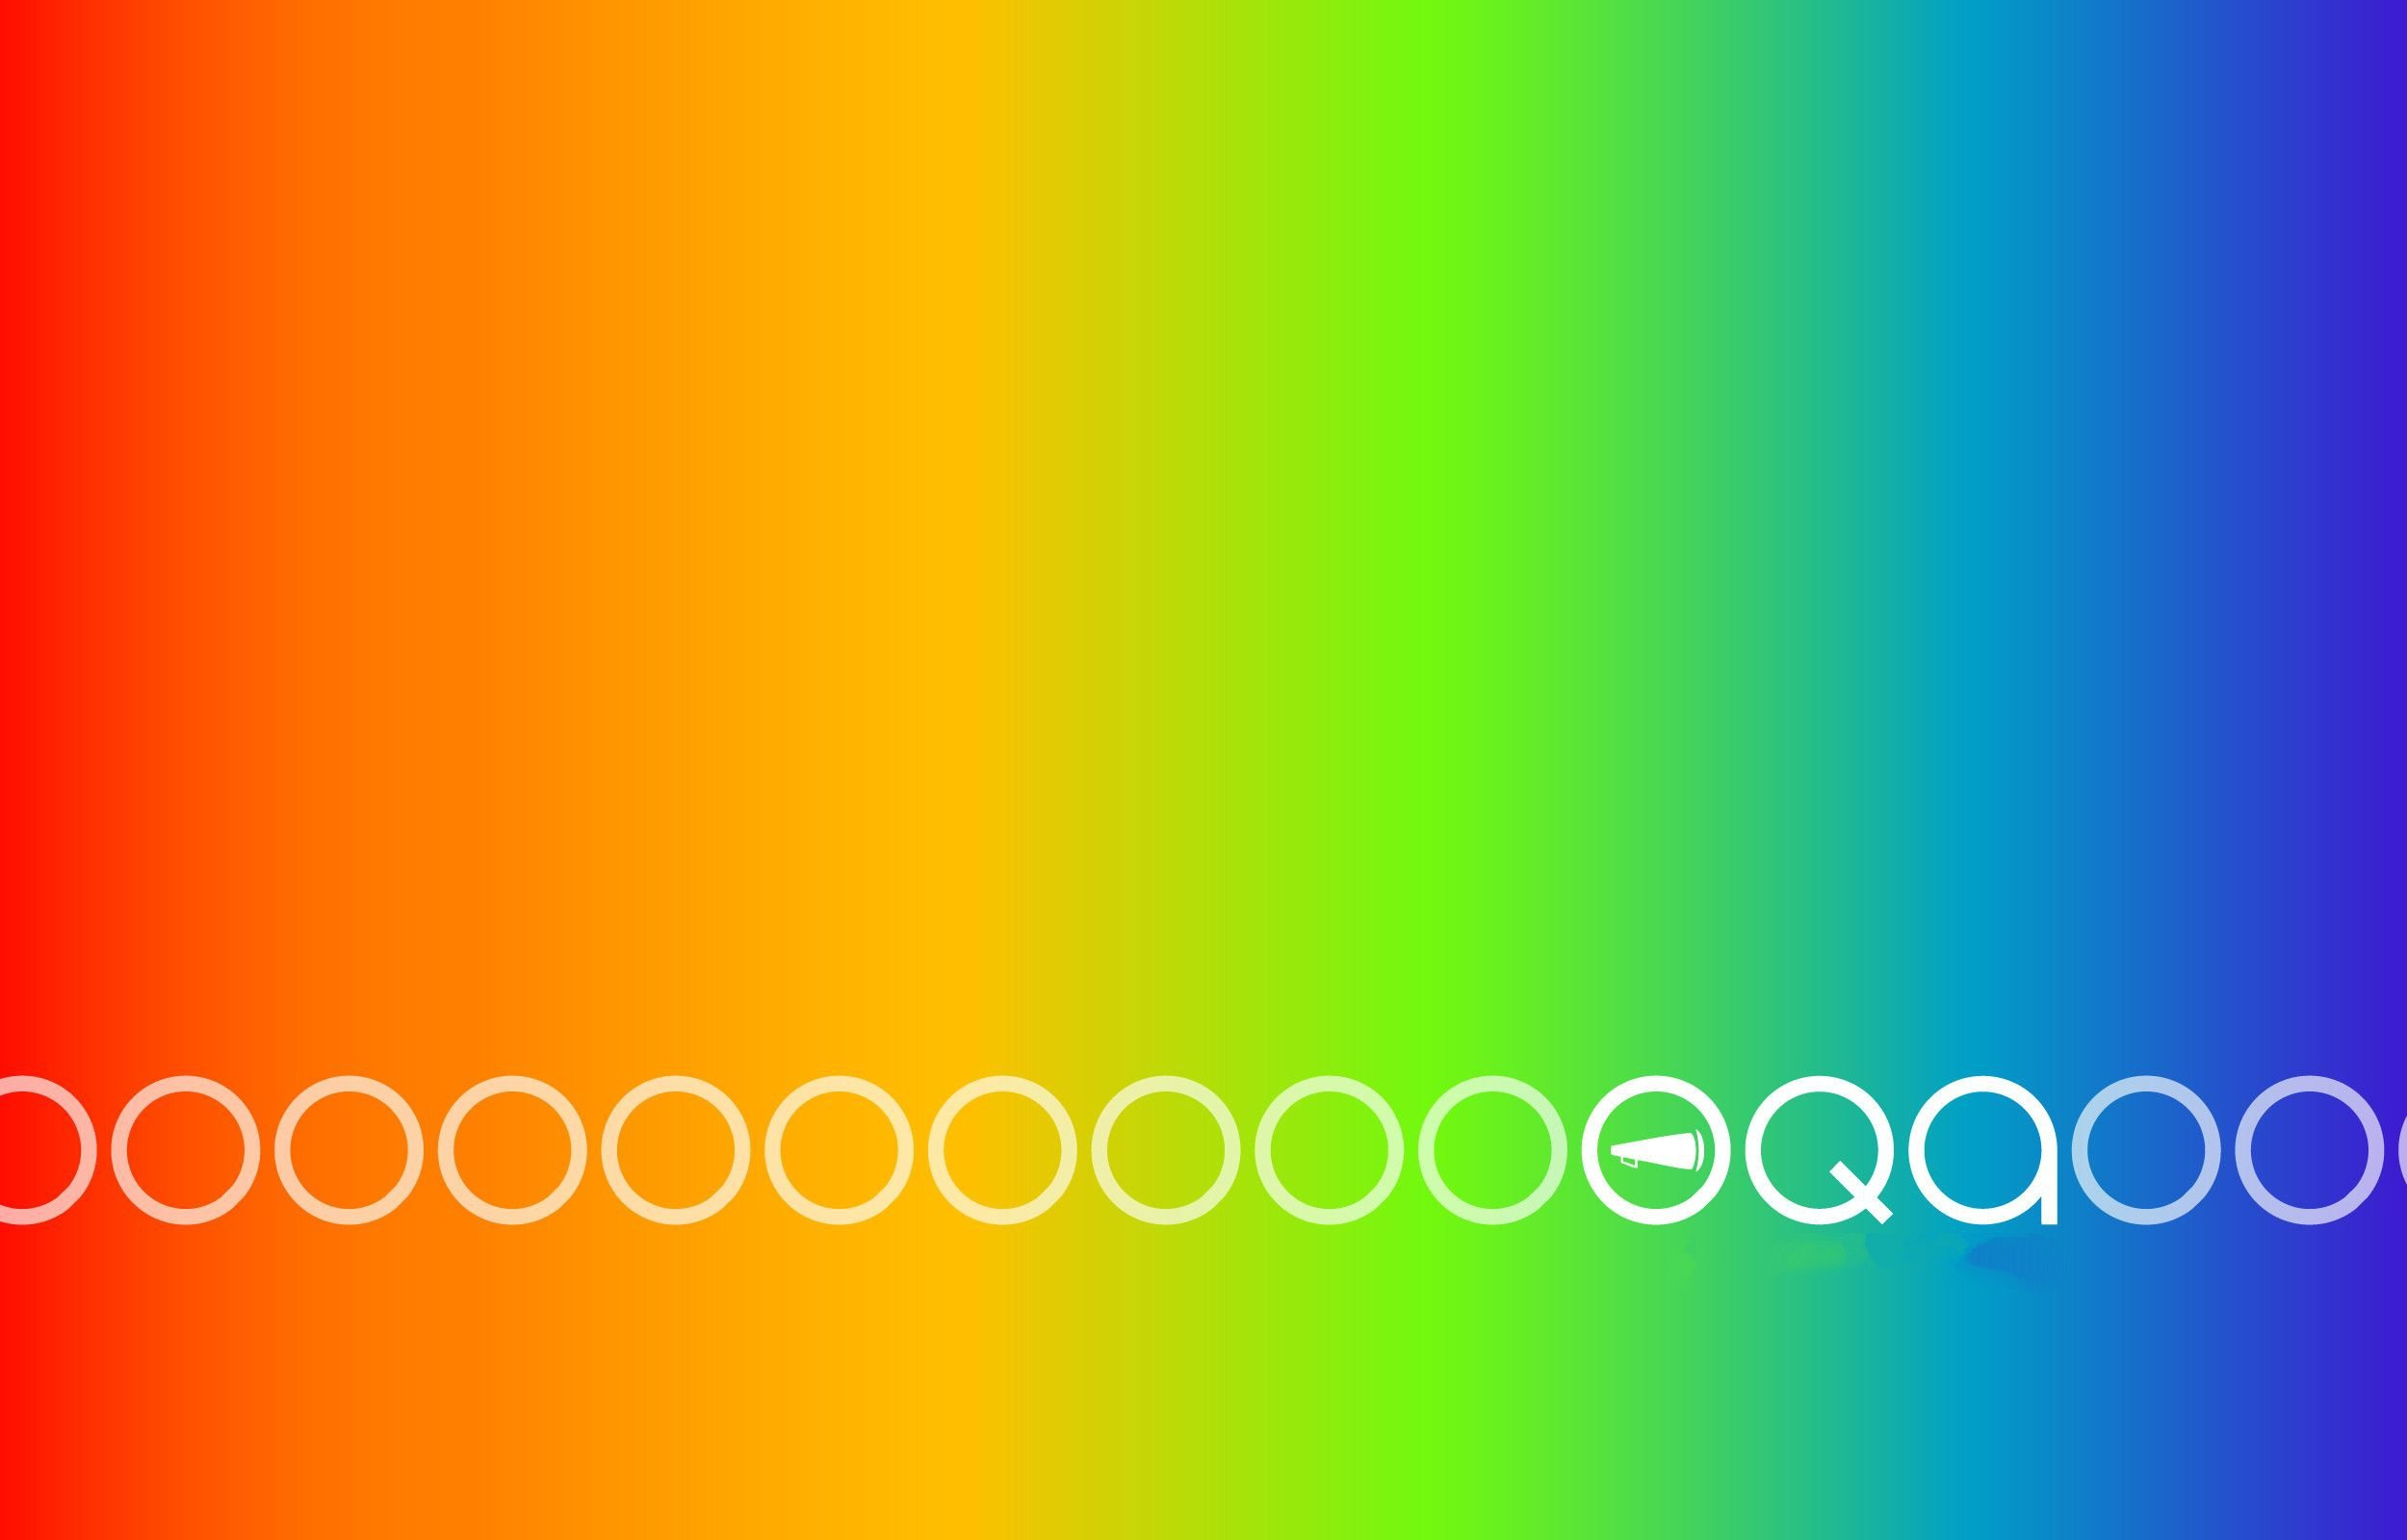 HD Gay Pride Backgrounds 2500x1600